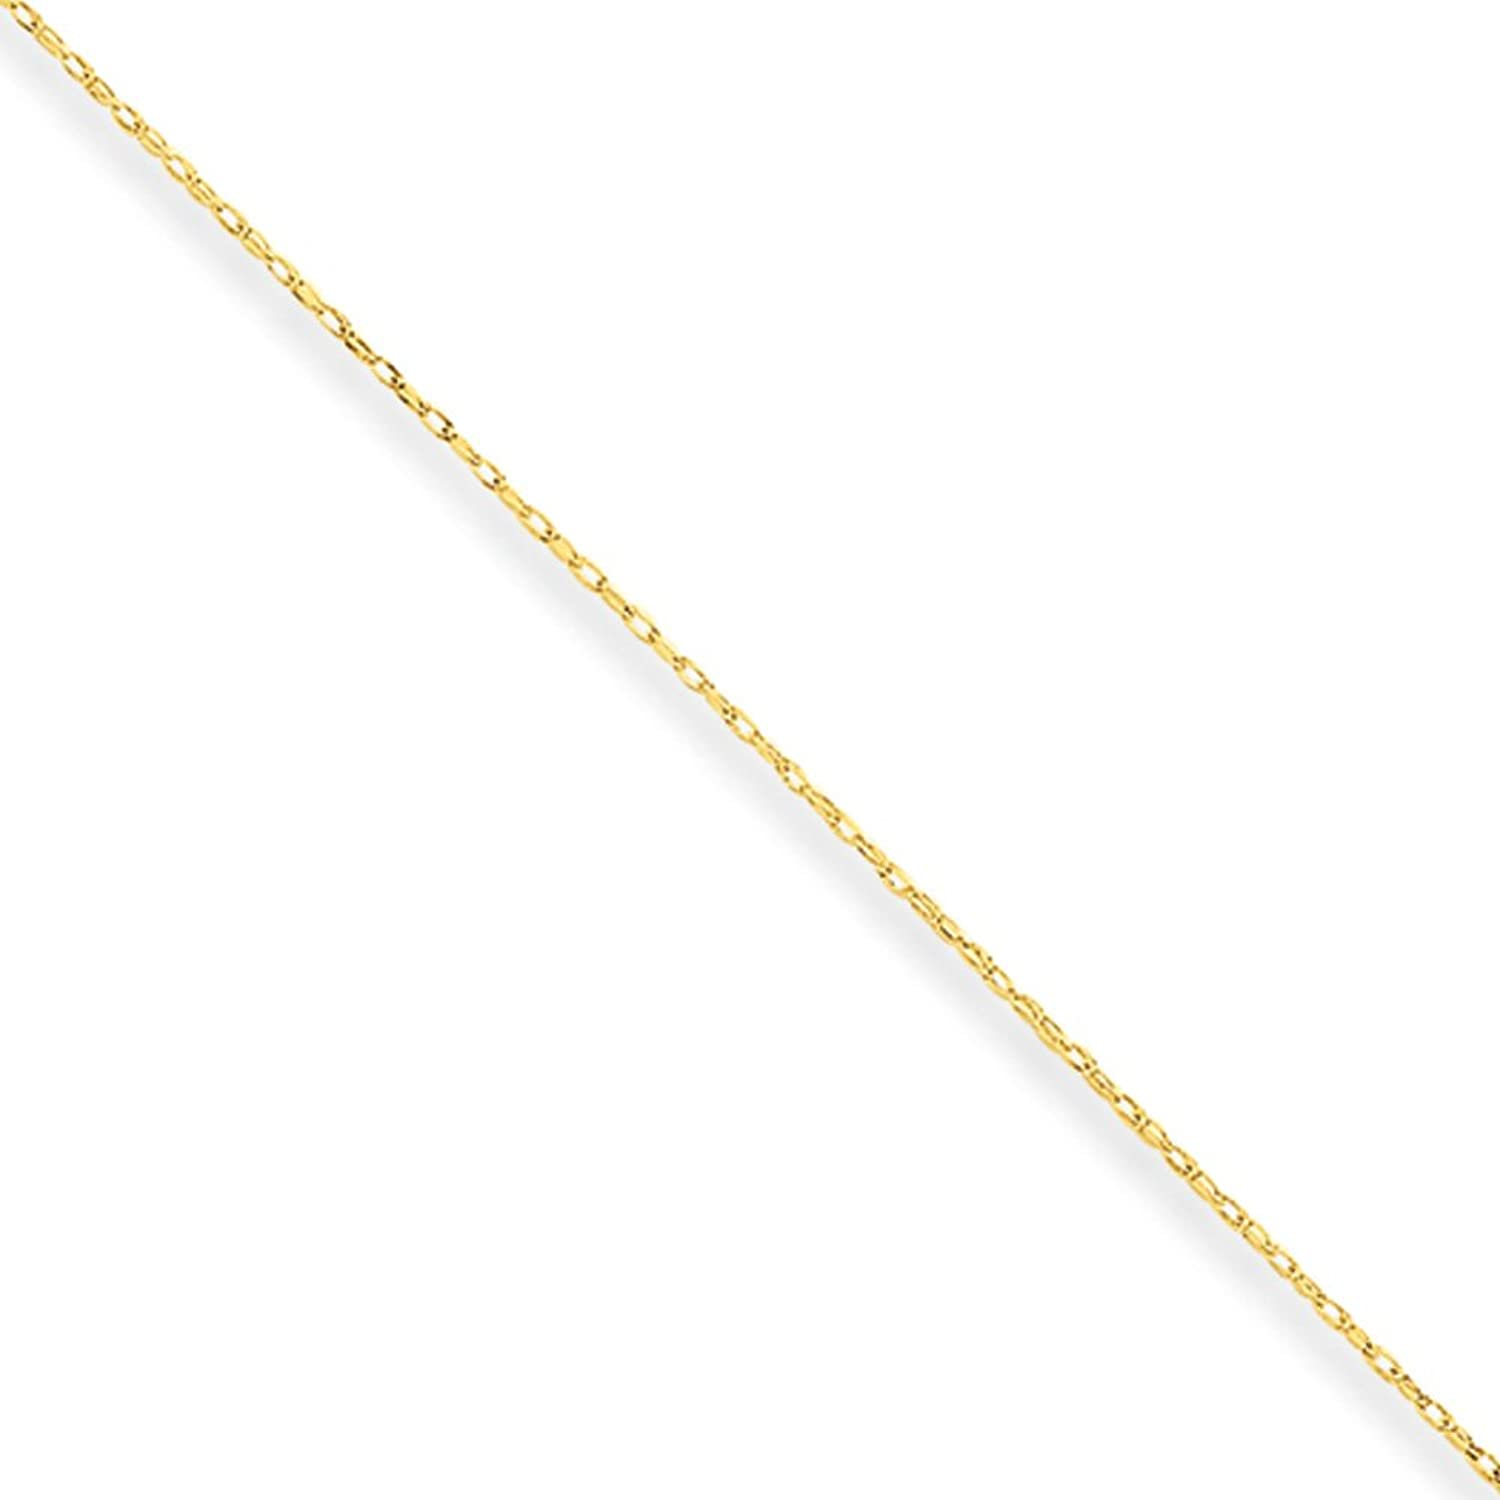 0.5mm, 14 Karat Yellow Gold, Cable Rope Chain - 24 inch